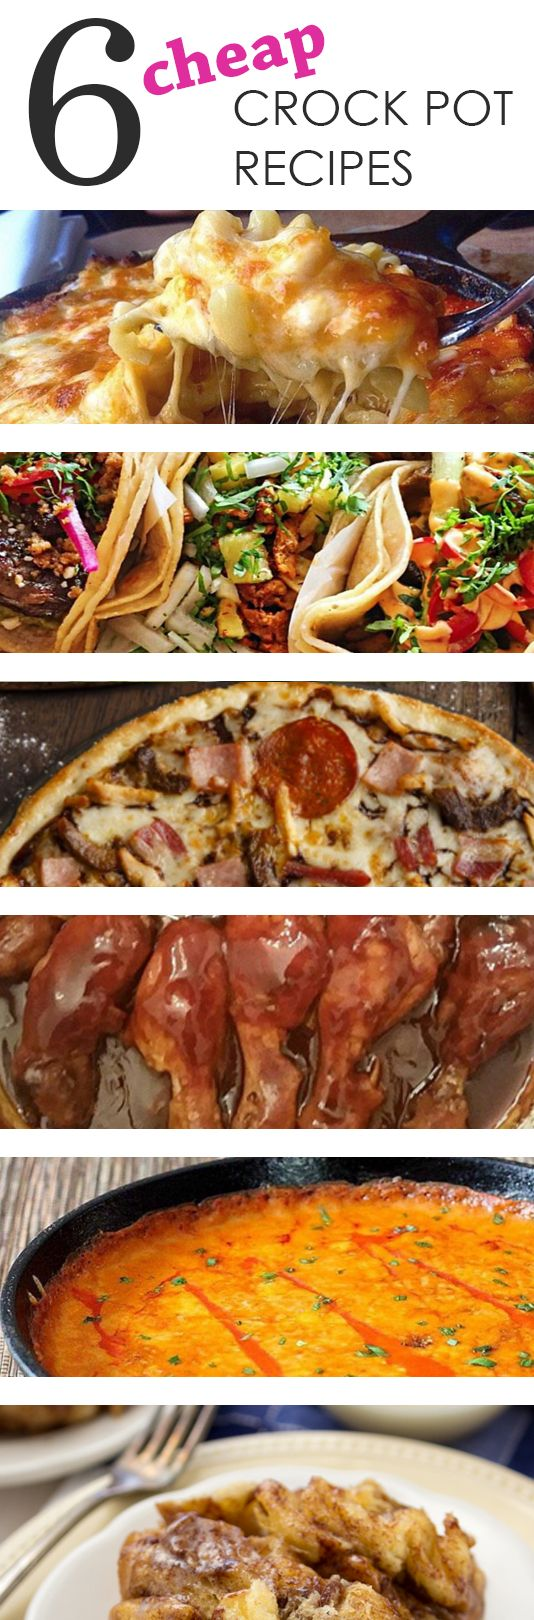 6 Cheap Crock Pot Recipes...